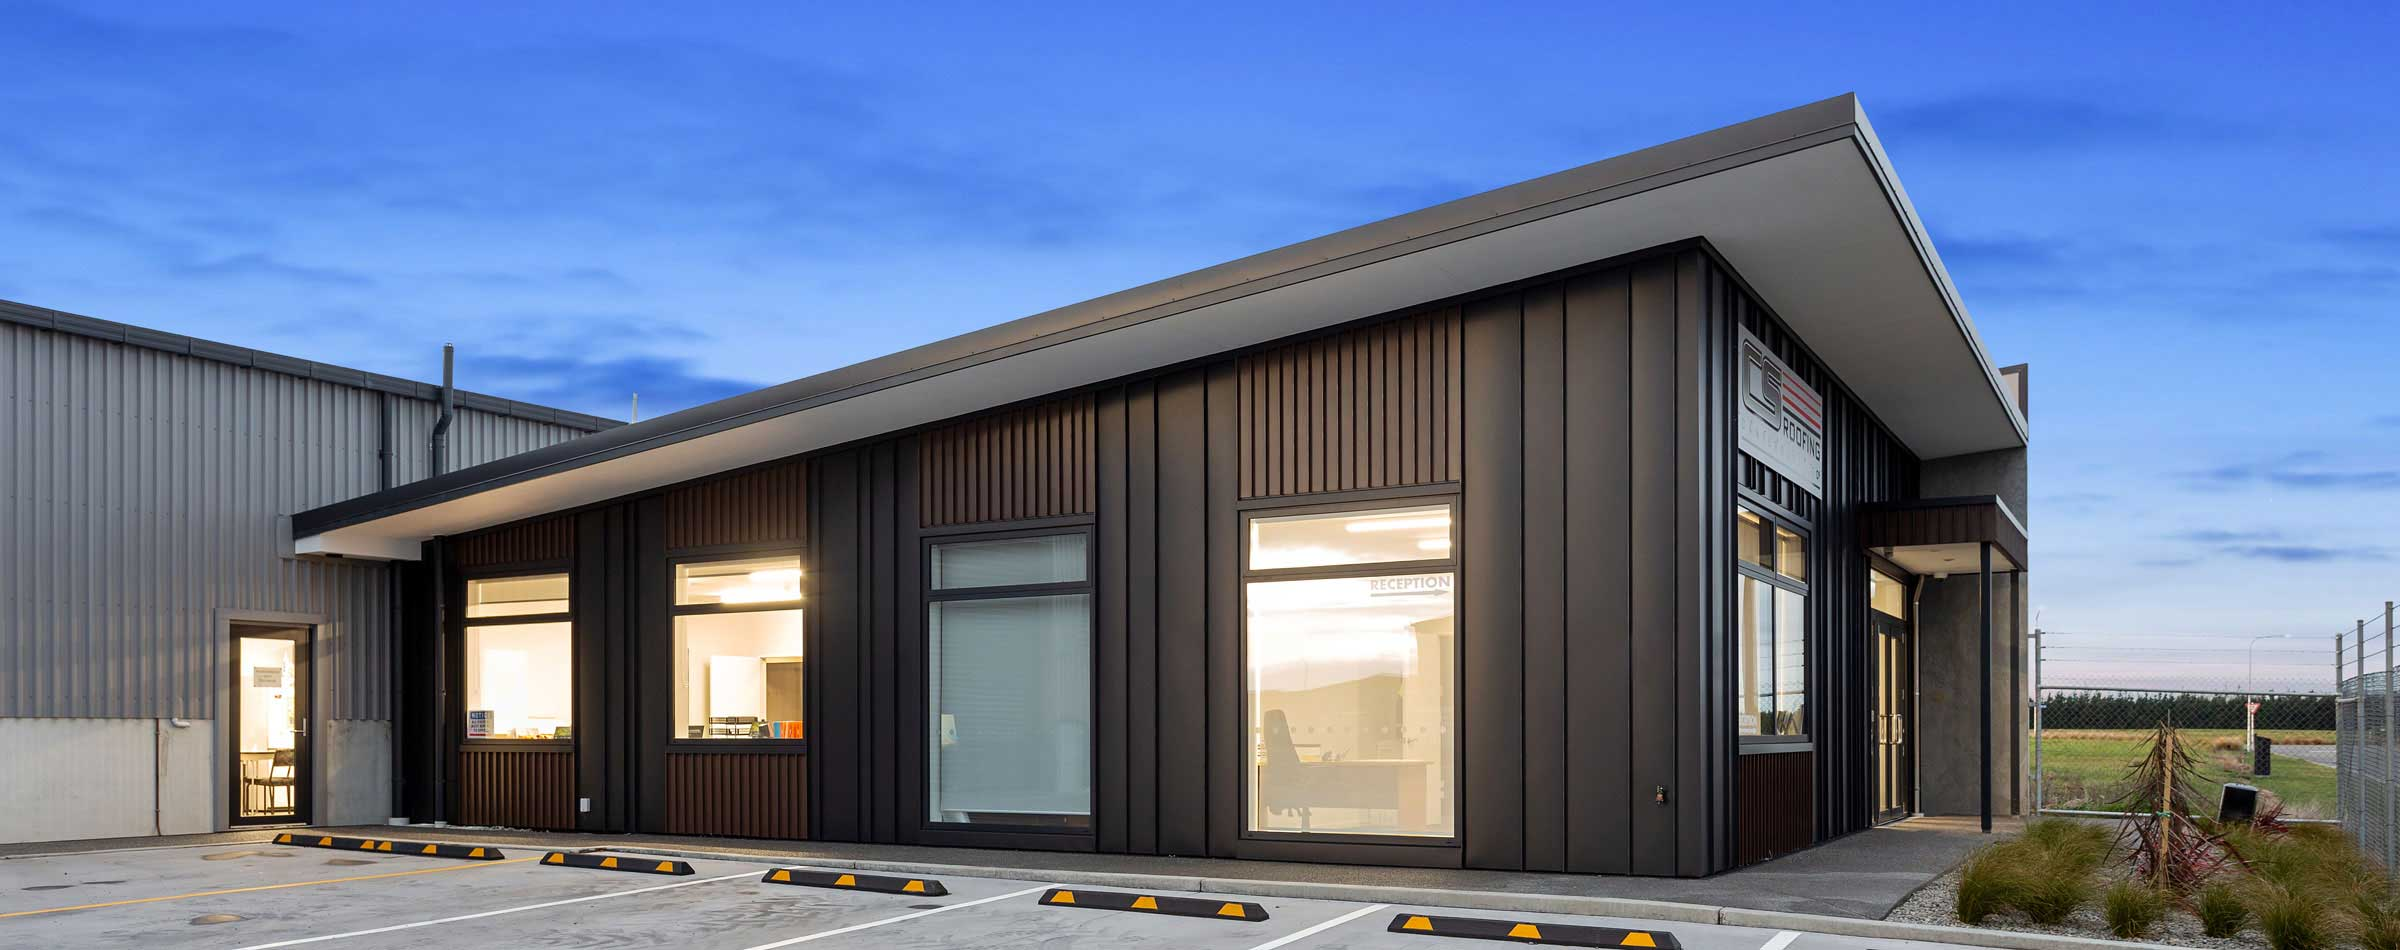 Large Construction project for Widespan sheds in Rolleston, New Zealand designed and built by Cohesive Group